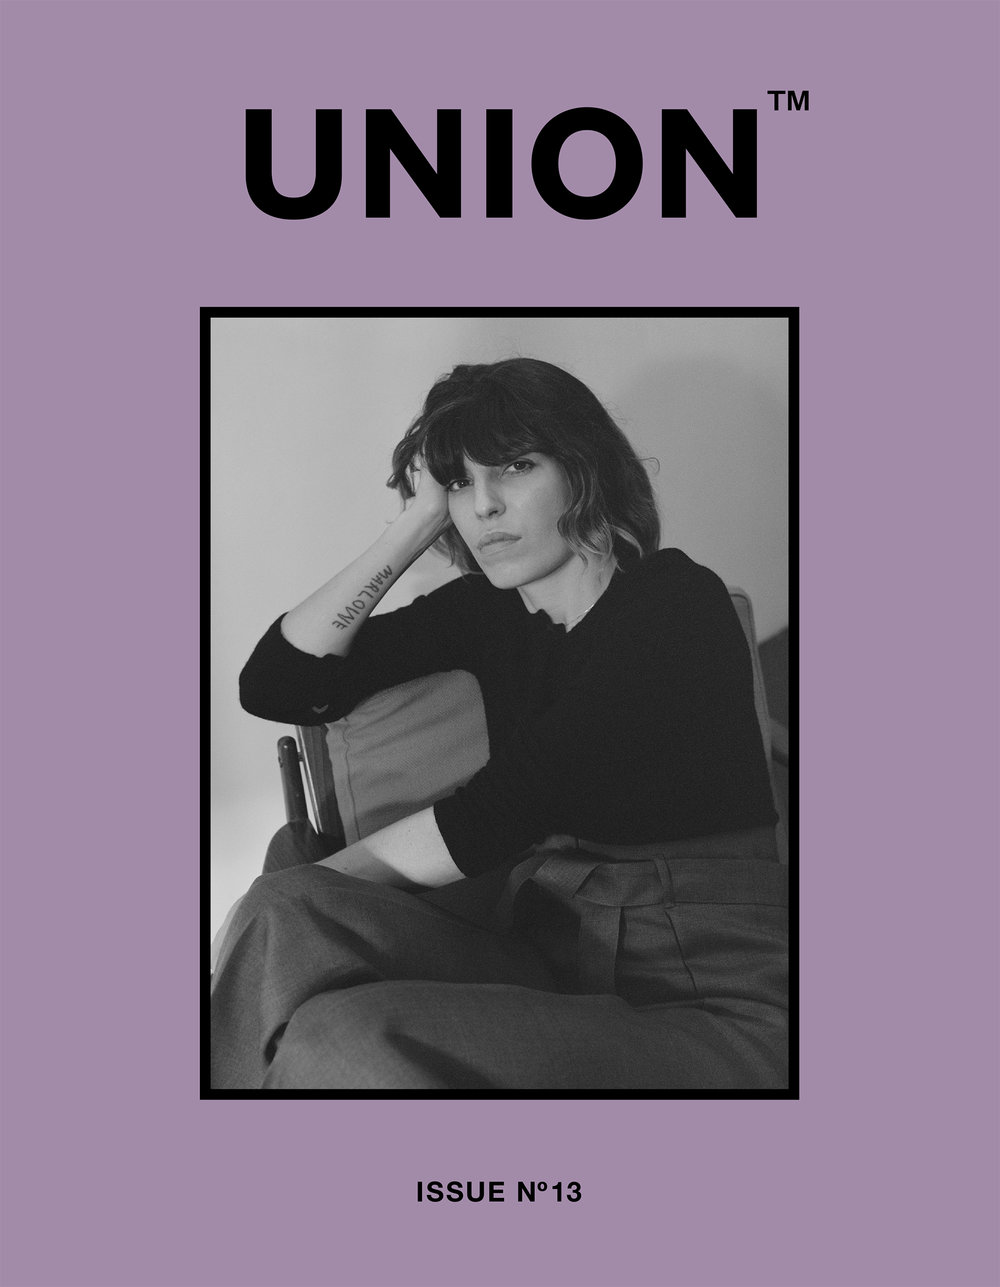 Union-Cover-#13-1.jpg